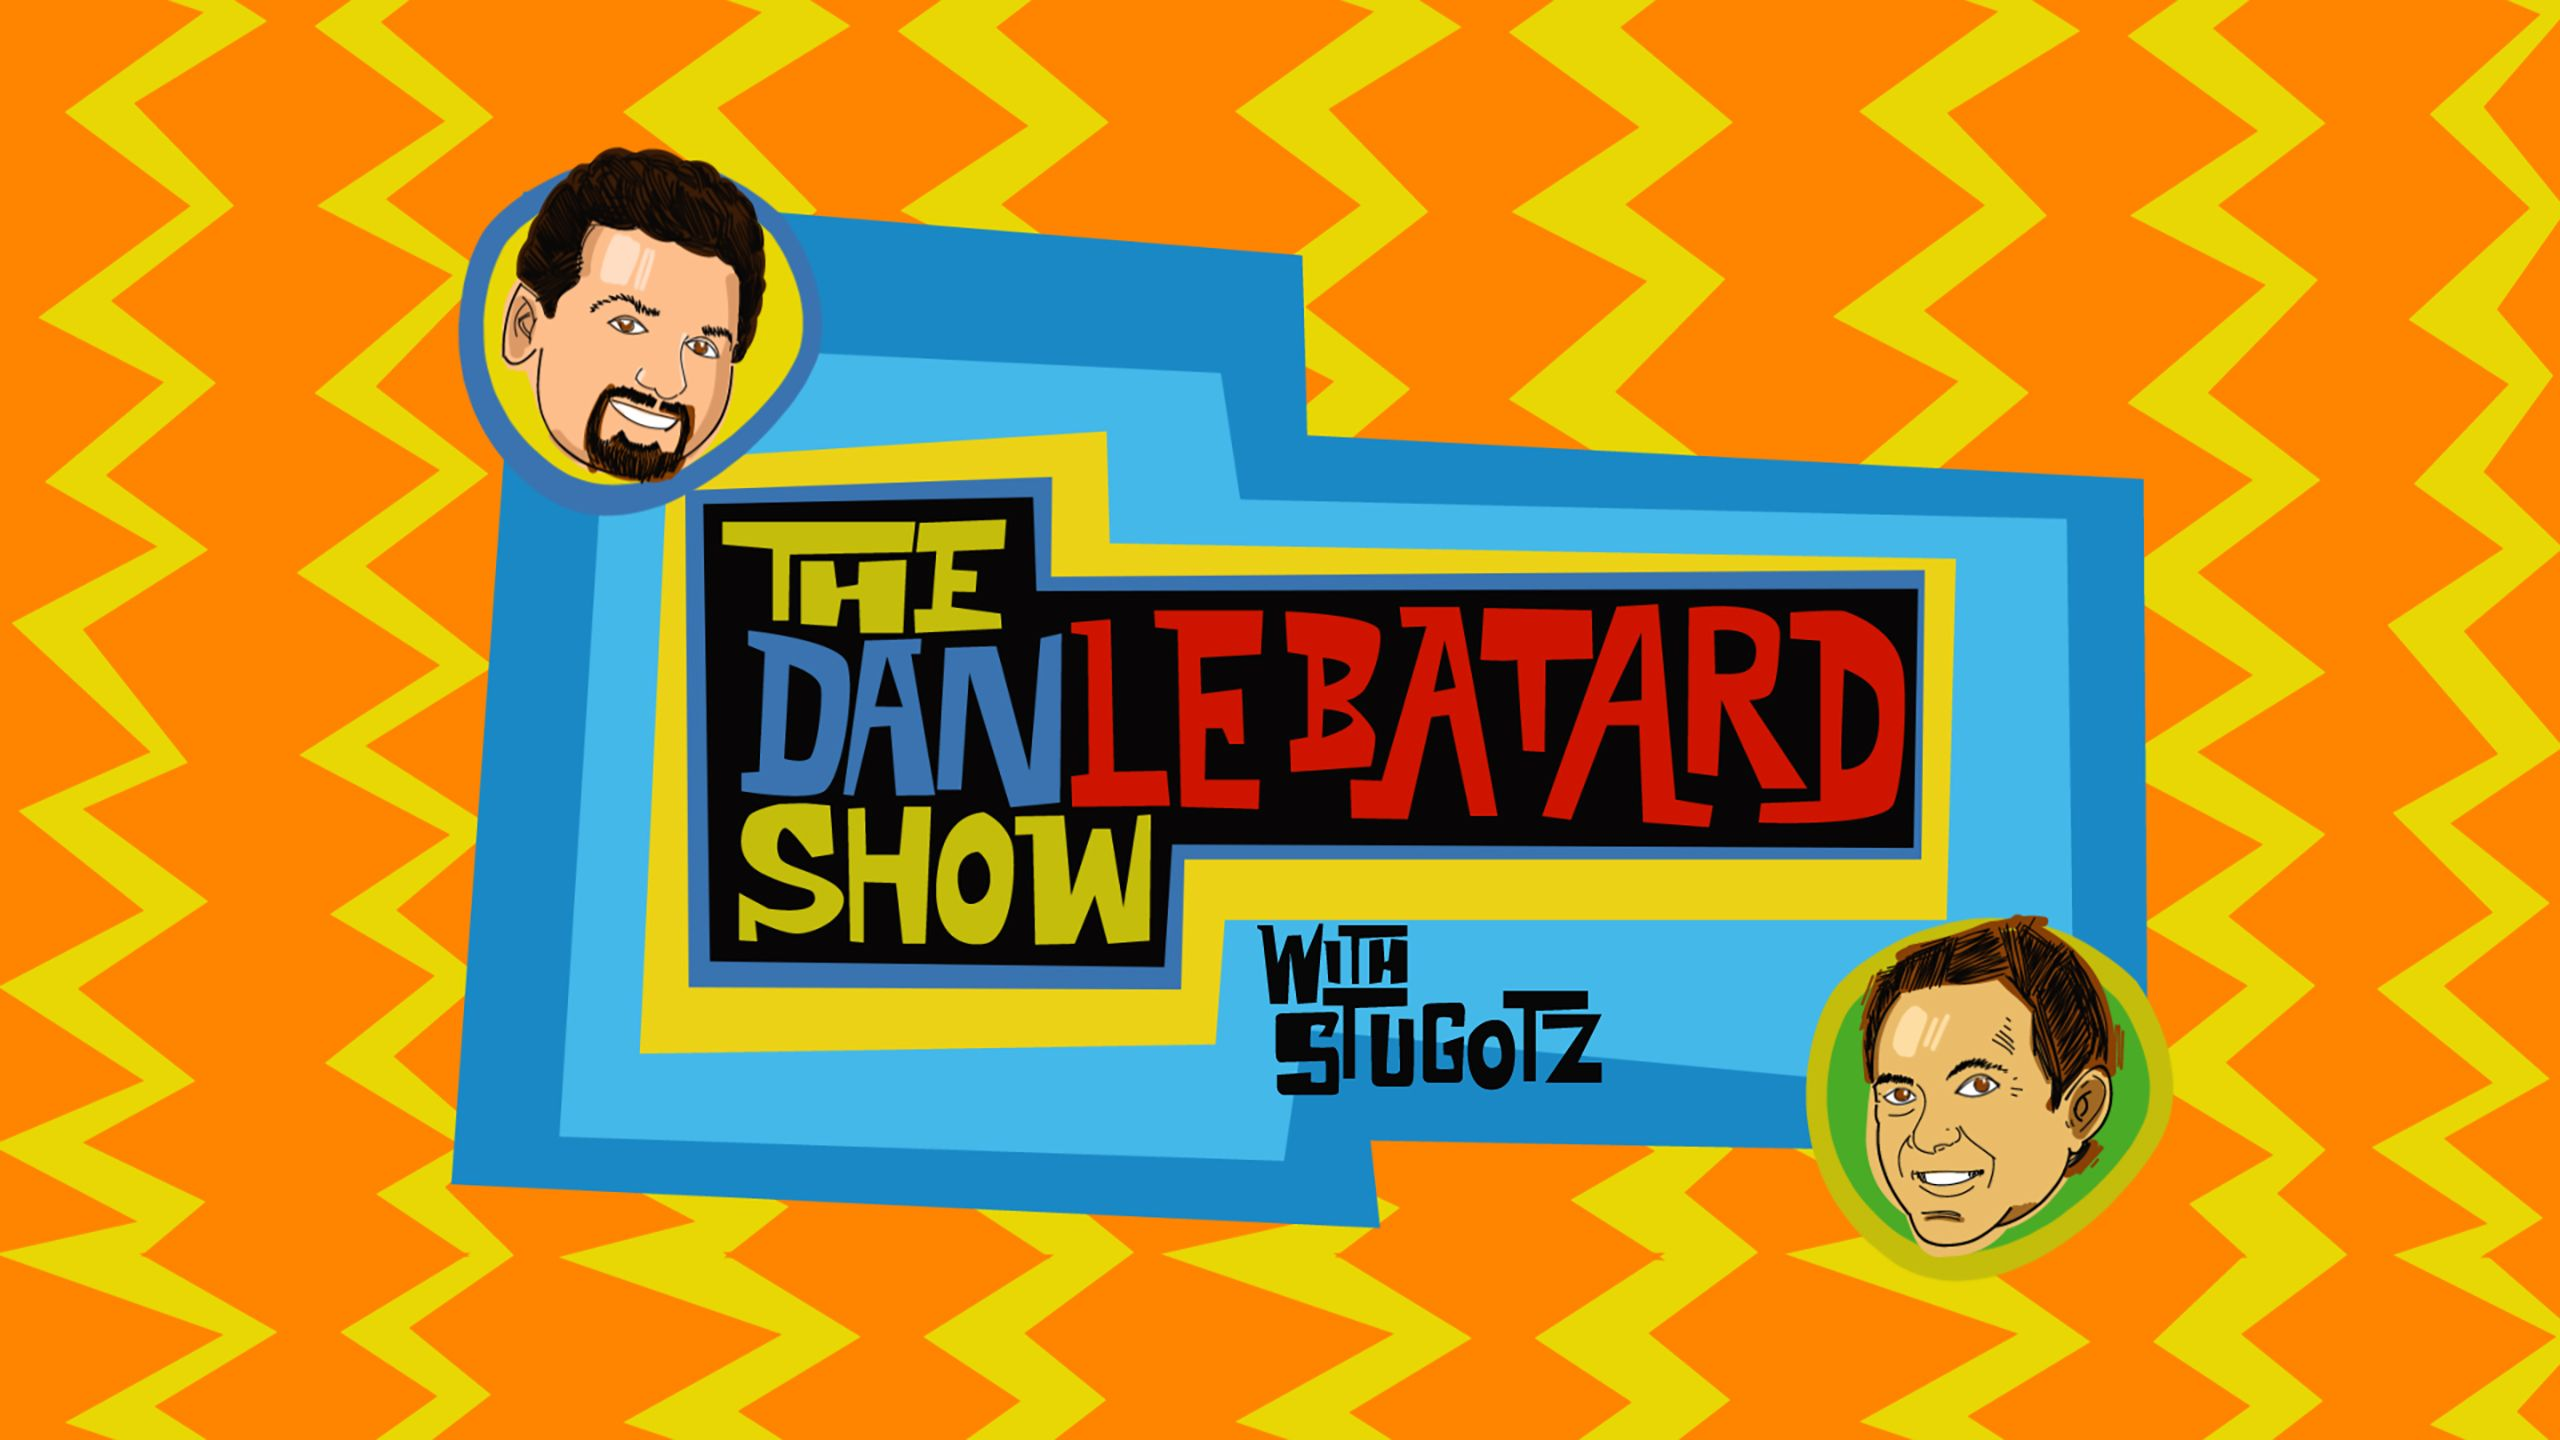 Thu, 4/19 - The Dan Le Batard Show with Stugotz Presented by Progressive